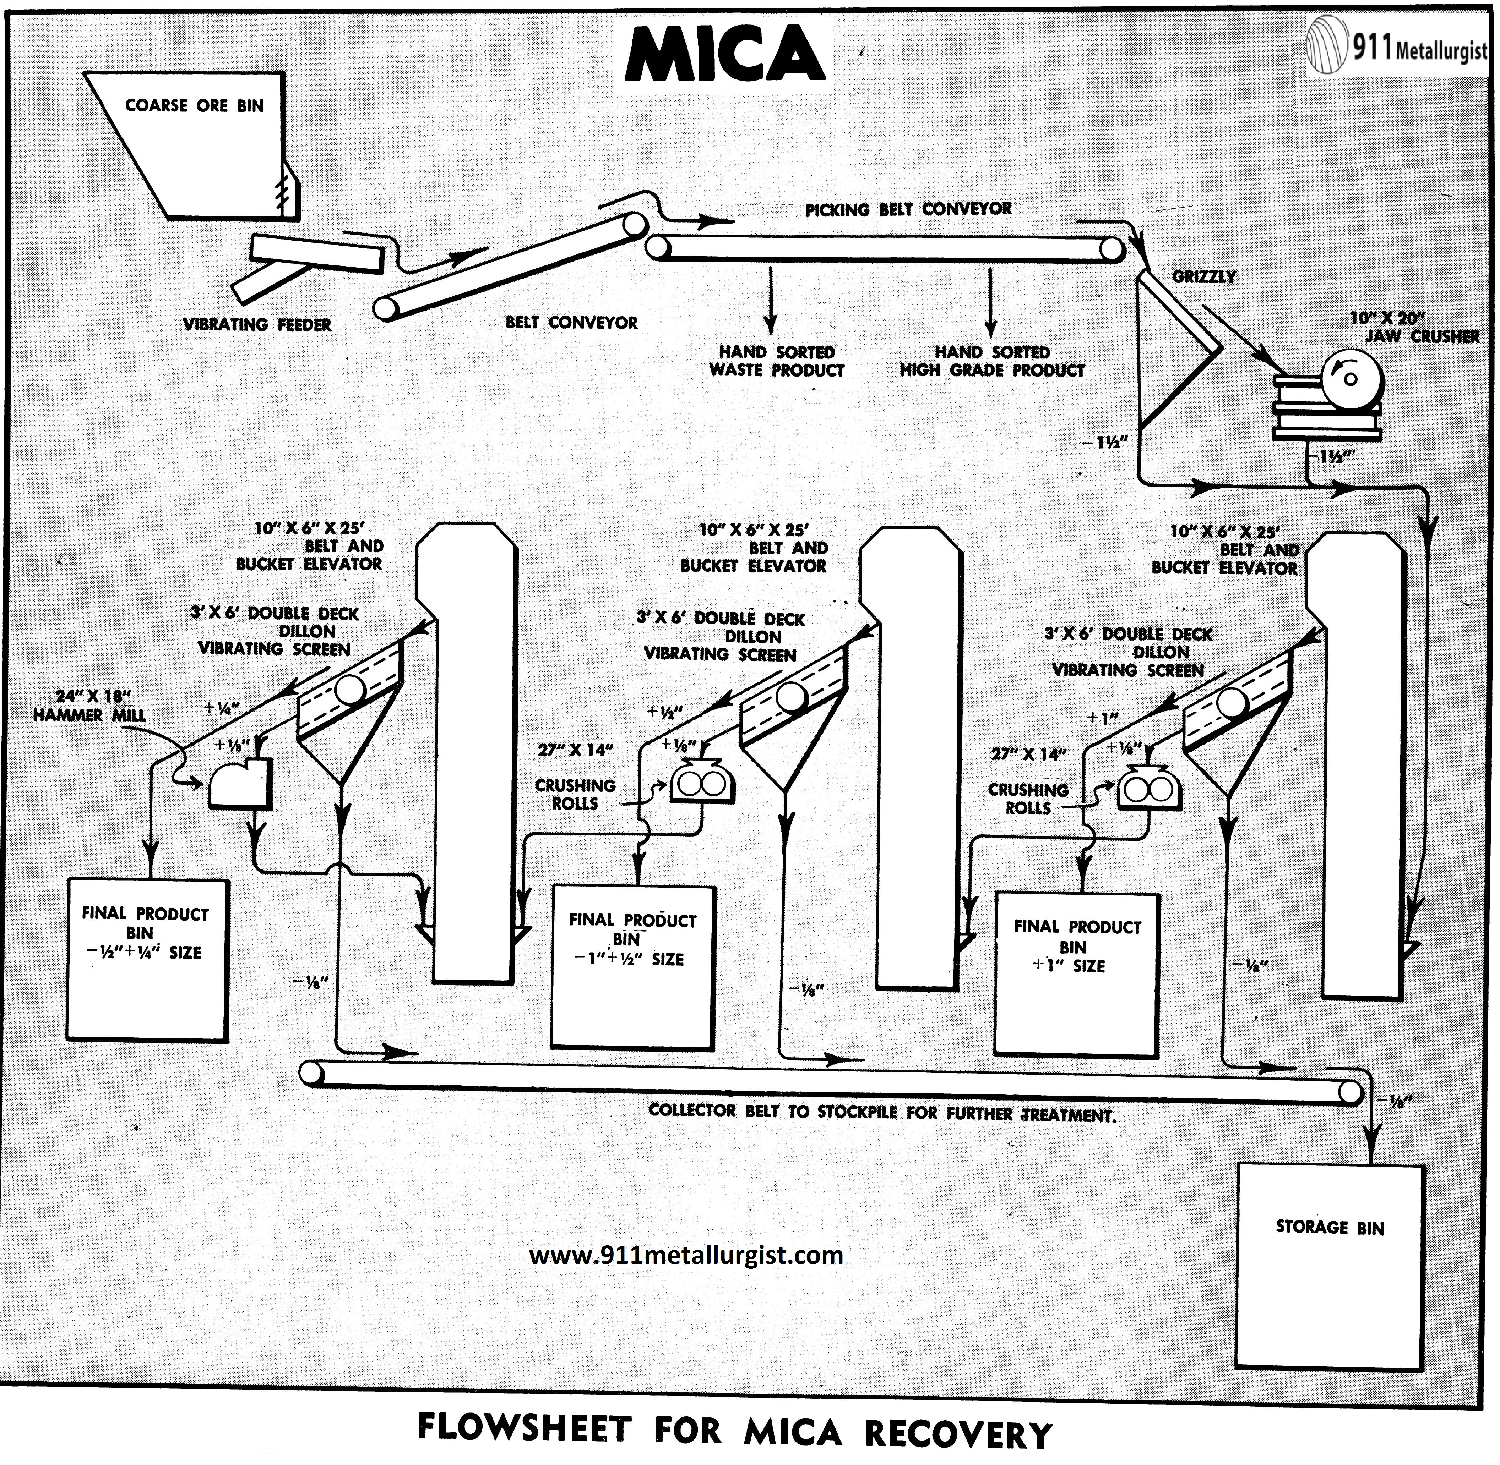 Flowsheet for Mica Recovery